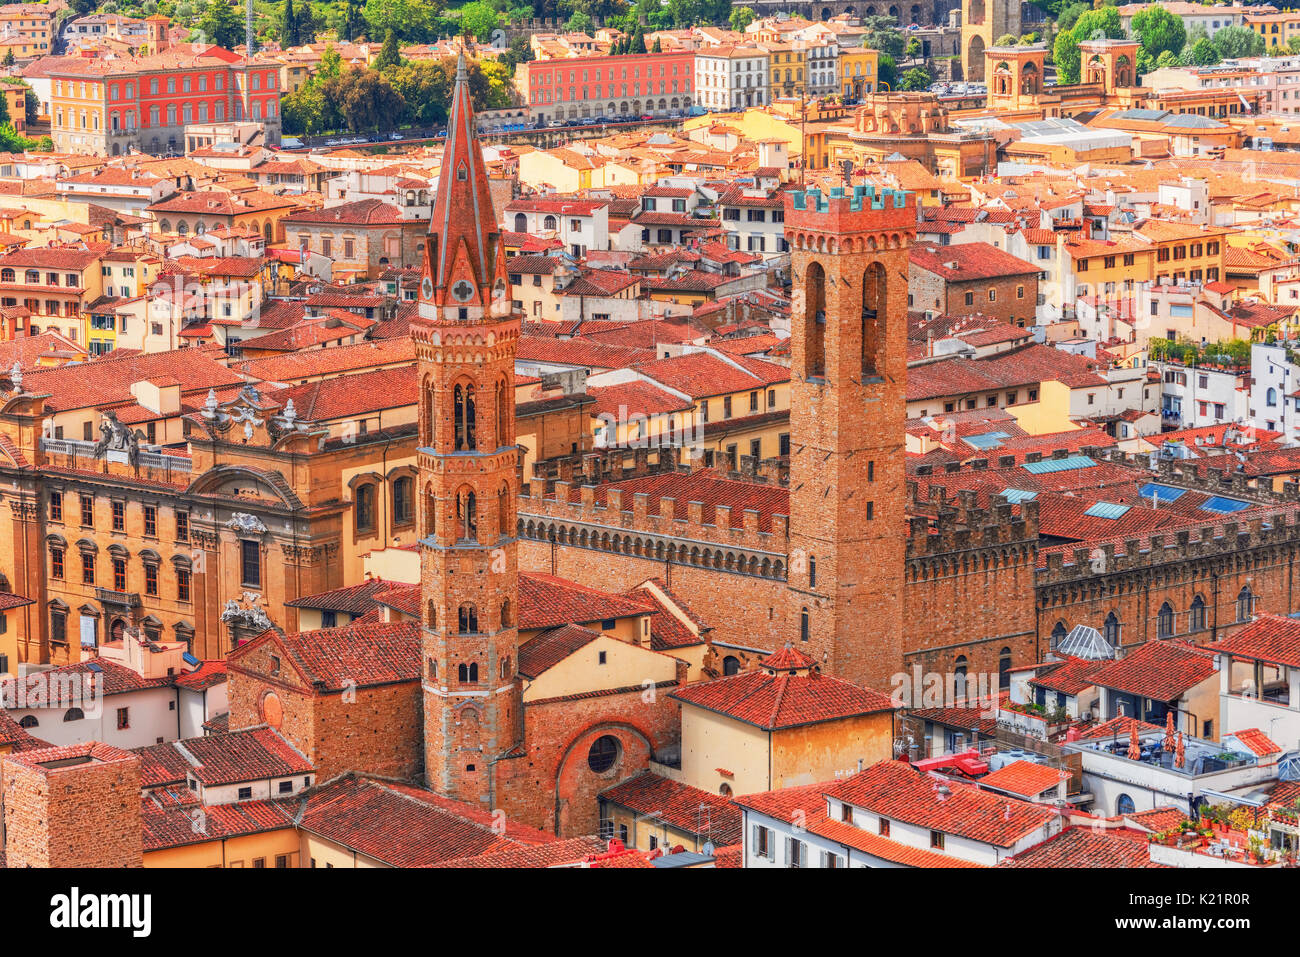 Badia Fiorentina is an abbey and church now home to the Monastic Communities of Jerusalem situated on the Via del Stock Photo